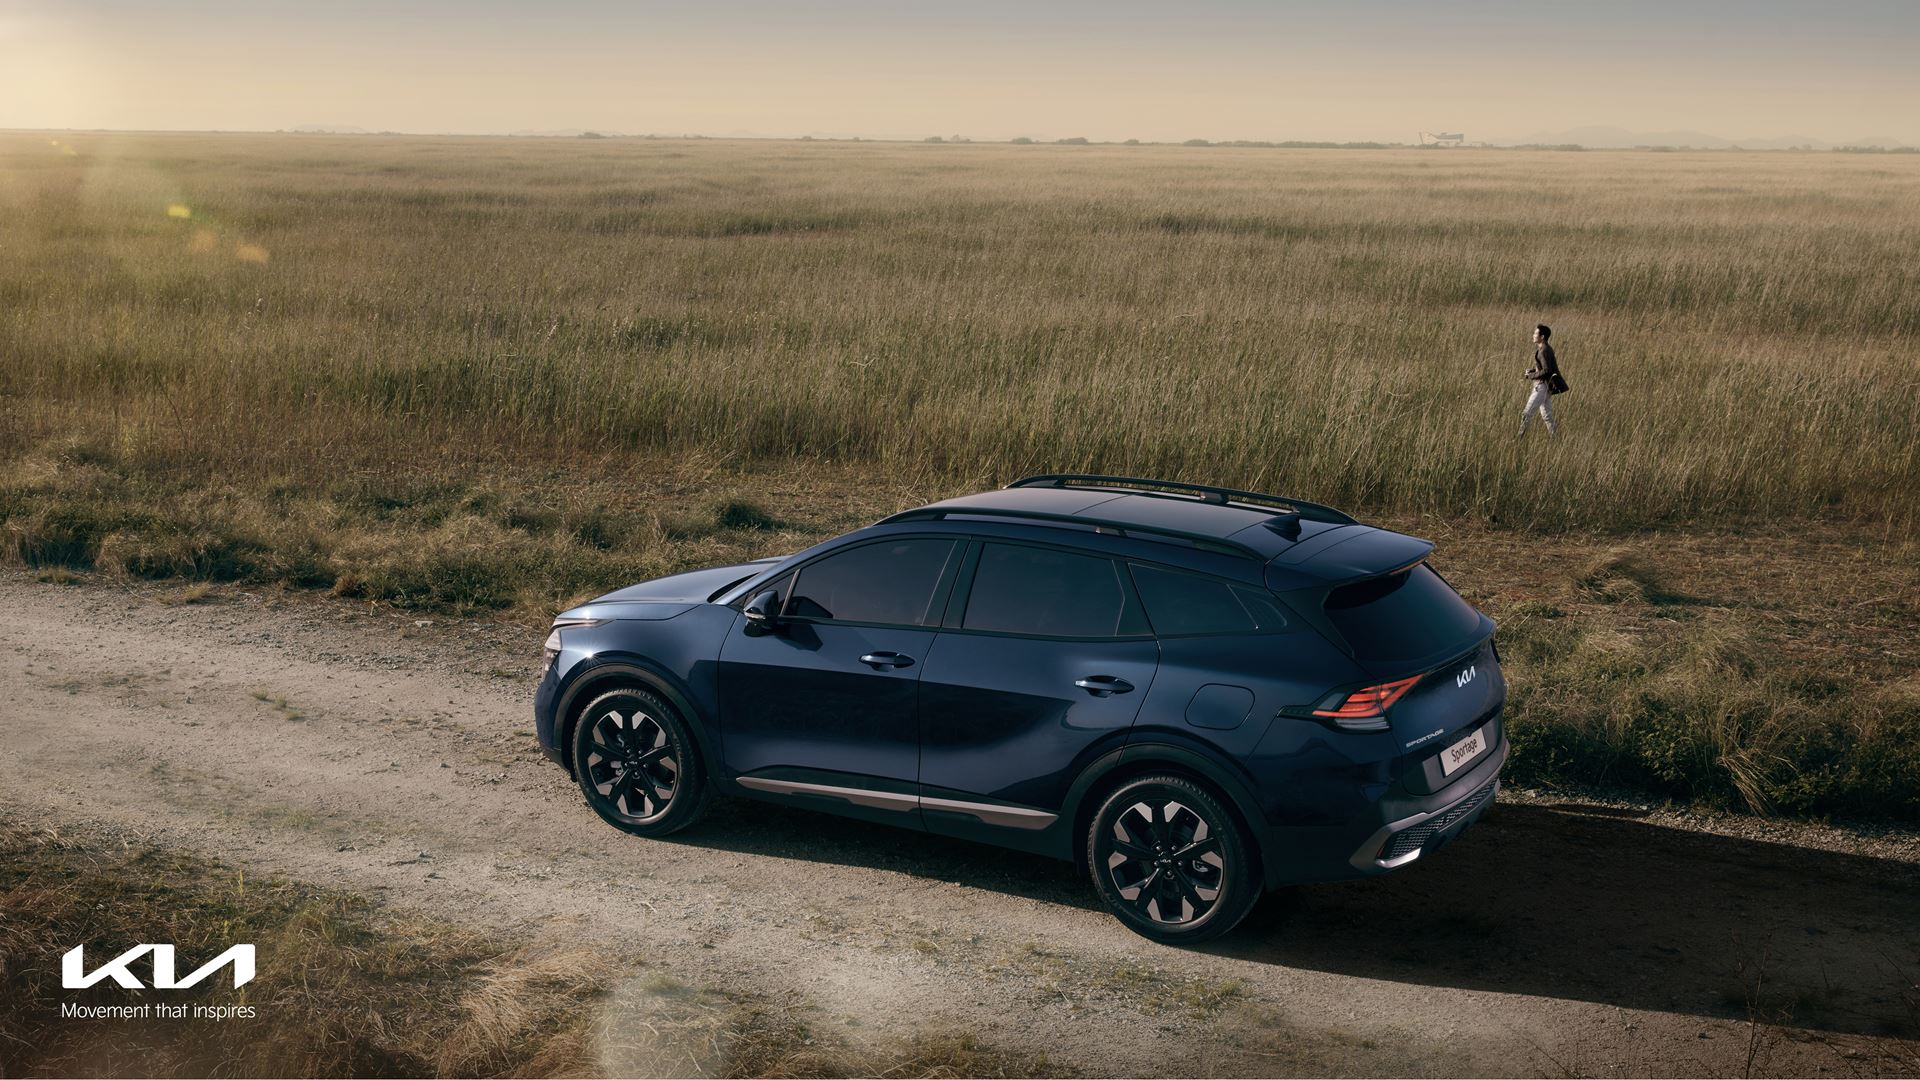 The all-new Kia Sportage sets new standards with inspiring SUV design - Image 4